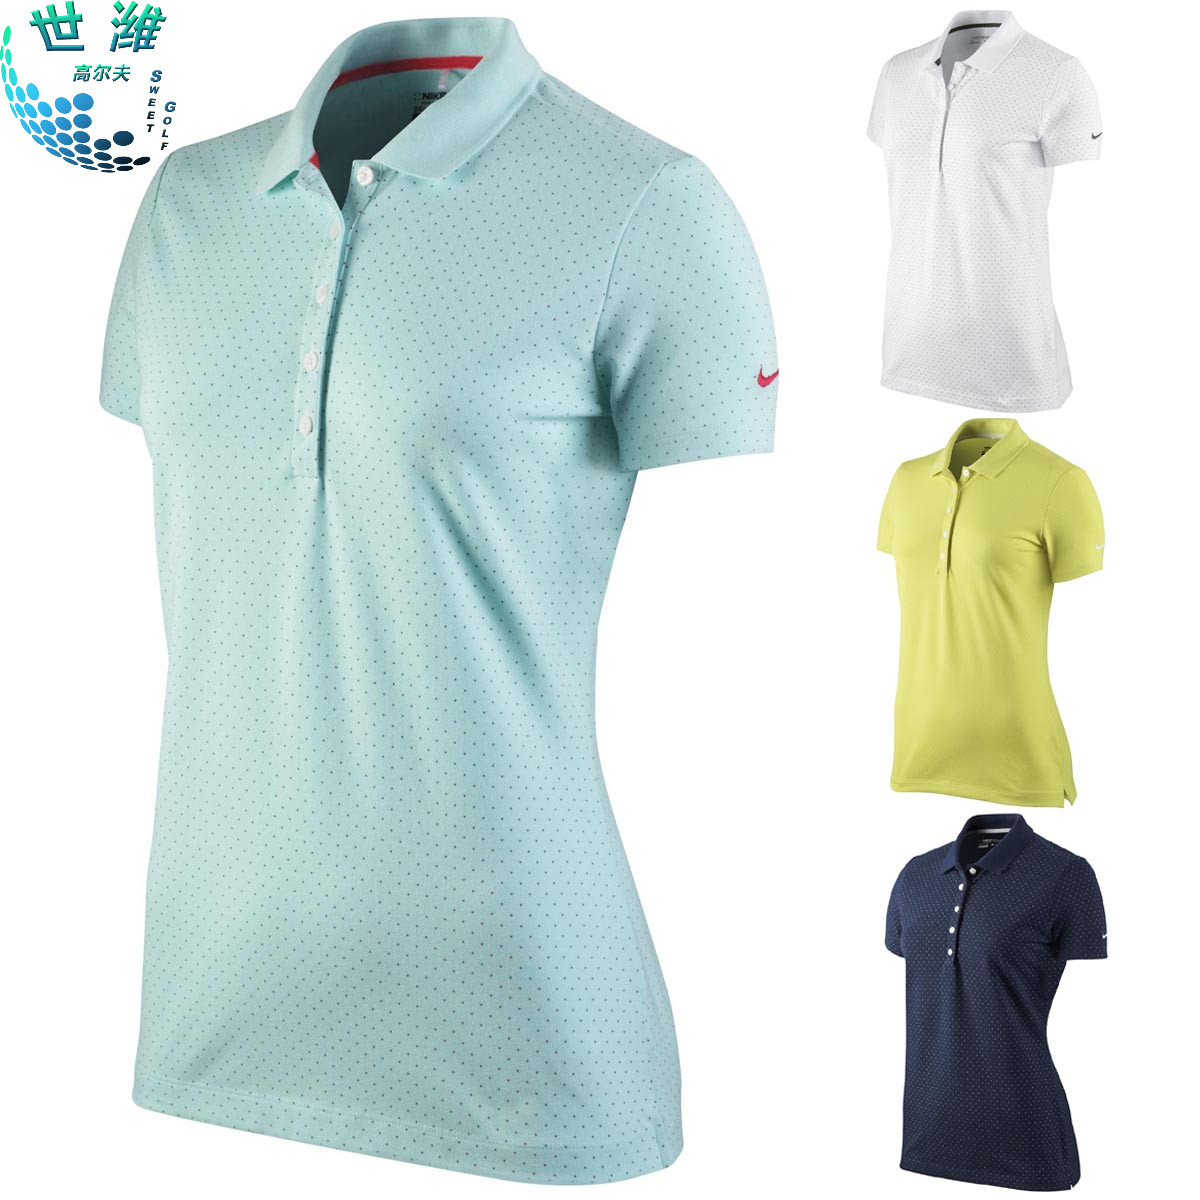 2a2b33b9e03 Buy Nike golf apparel nike golf golf clothes counter genuine ladies short  sleeve t-shirt polo shirt in Cheap Price on m.alibaba.com